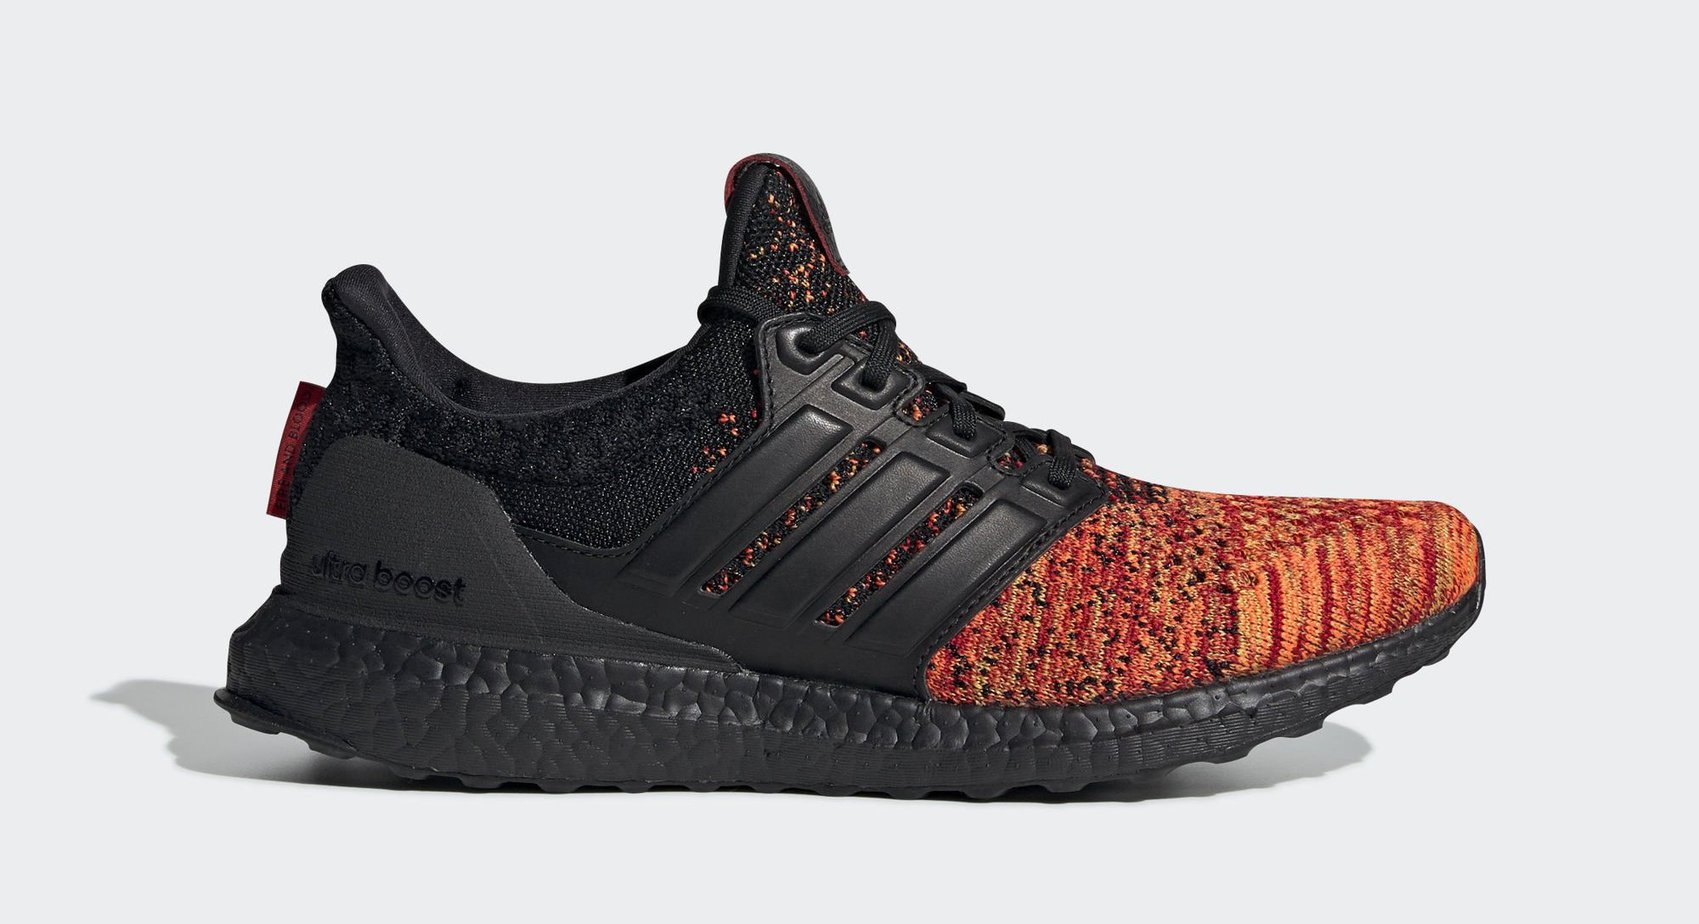 "ef6671c2a GOT x adidas Ultra Boost ""House Targaryen"" Core Black Core Black Scarlet  Red March 22"